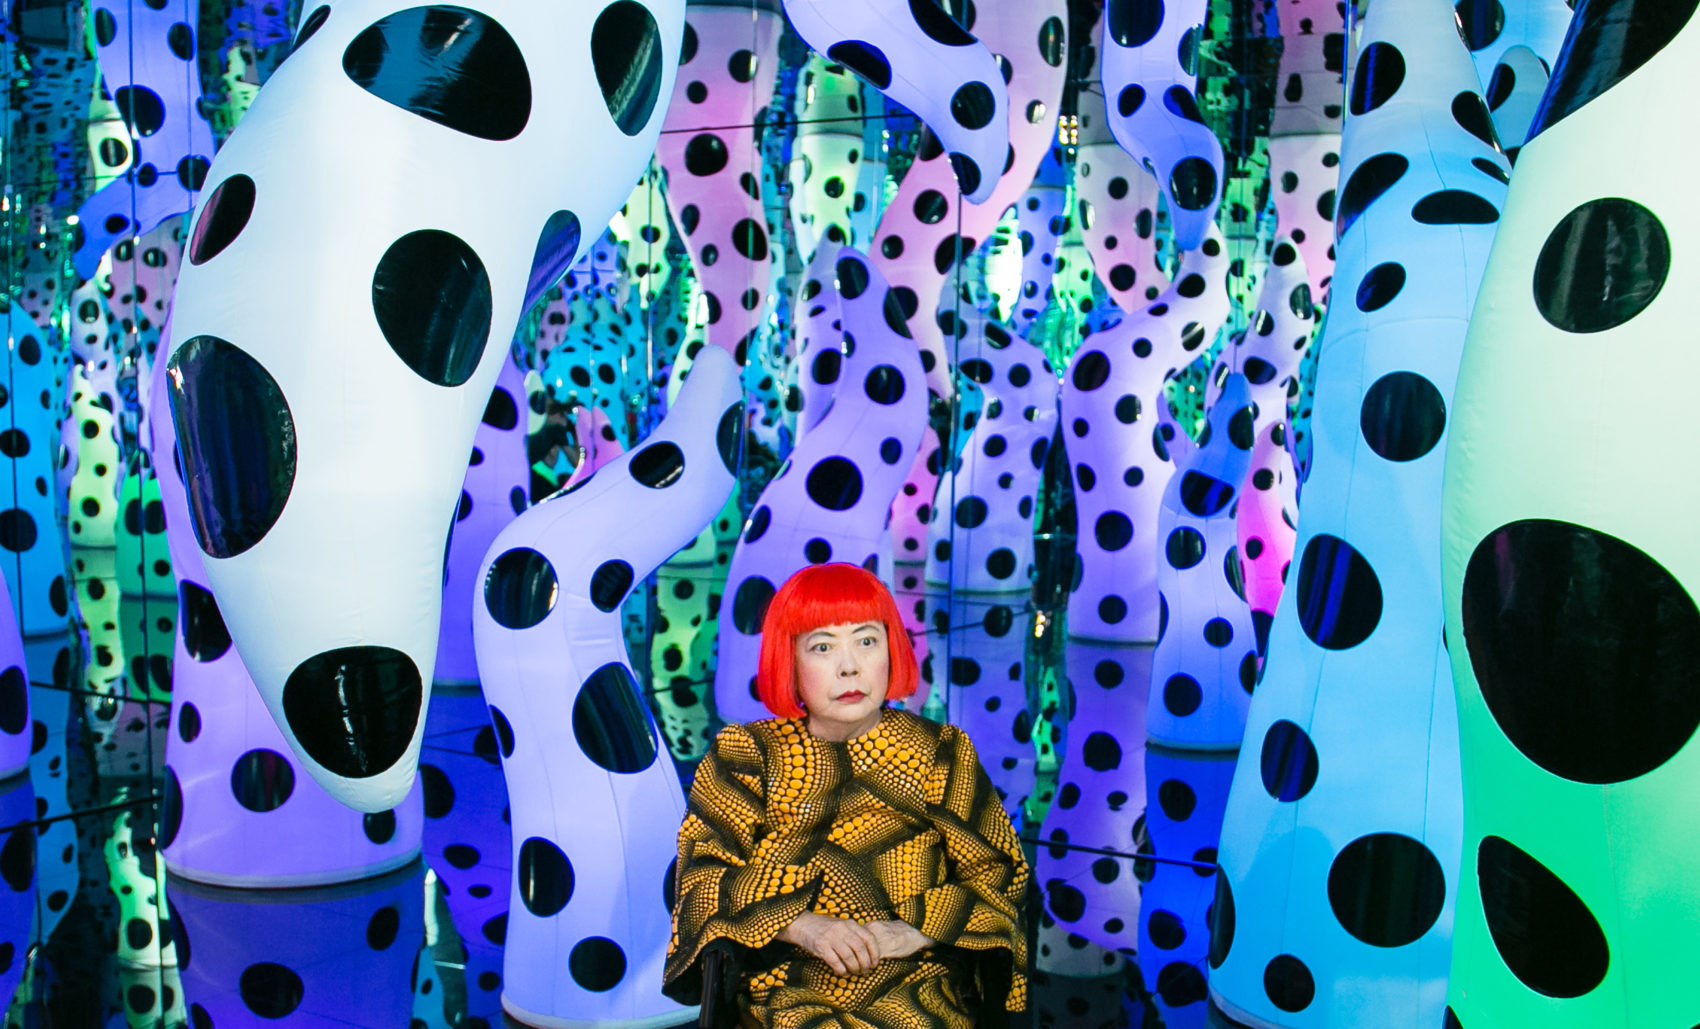 Fire Up Your Instagram A Psychedelic Infinity Room